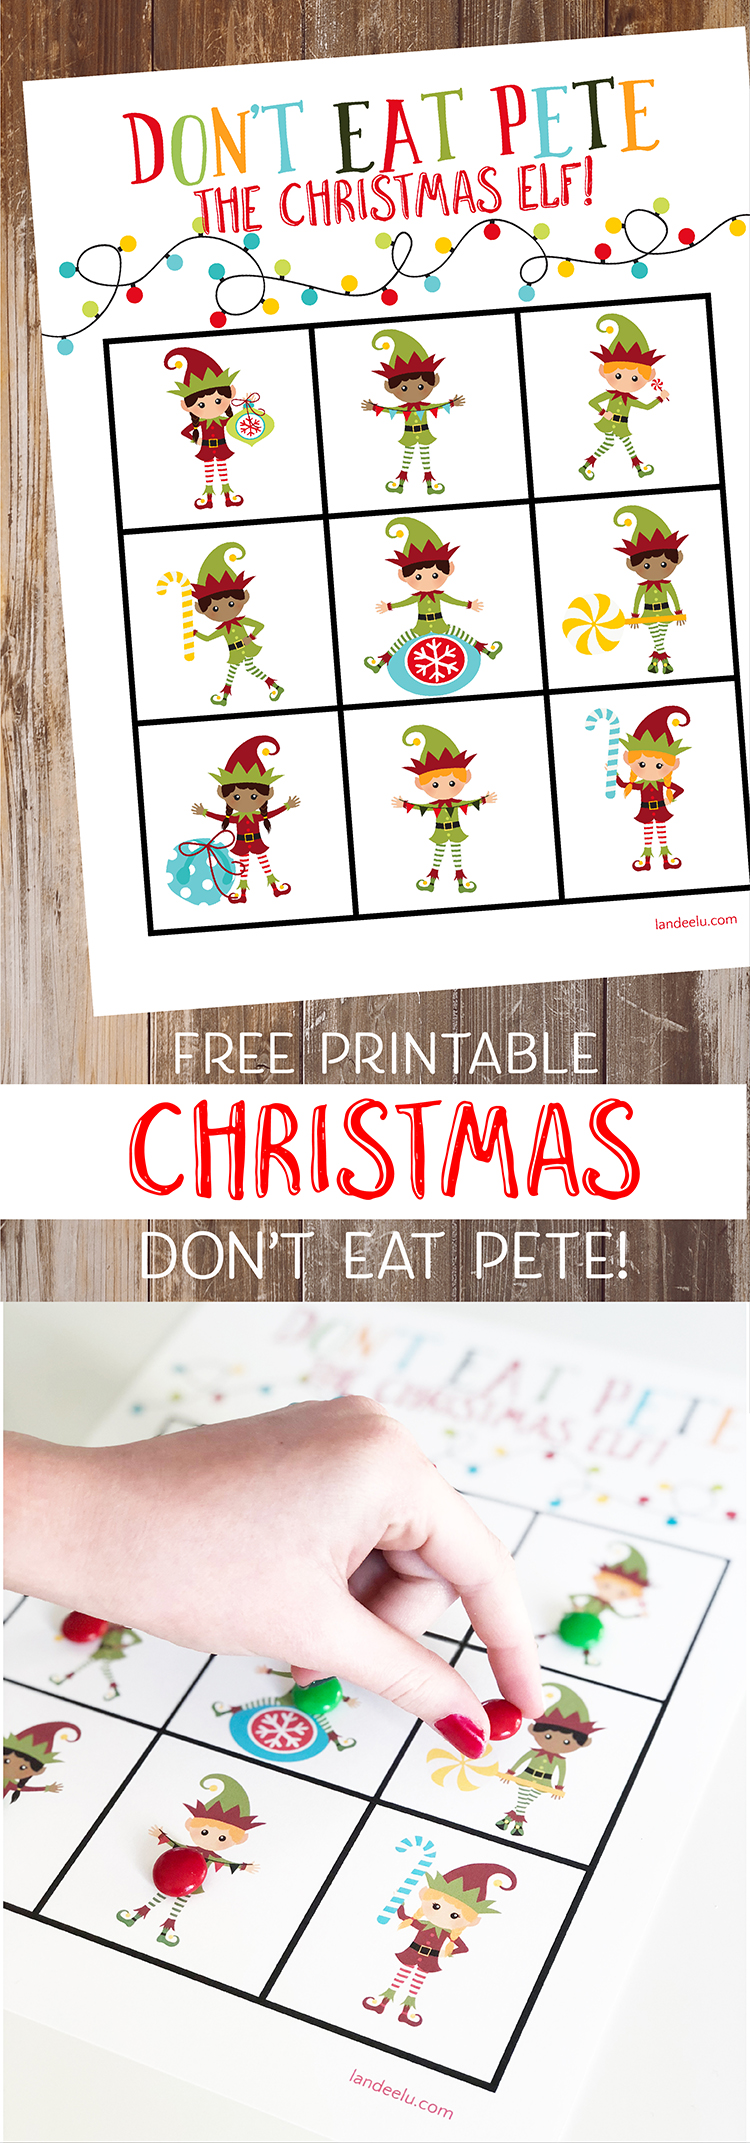 Add this Christmas version of Don't Eat Pete to your collection of fun family Christmas games! The kids will LOVE it!